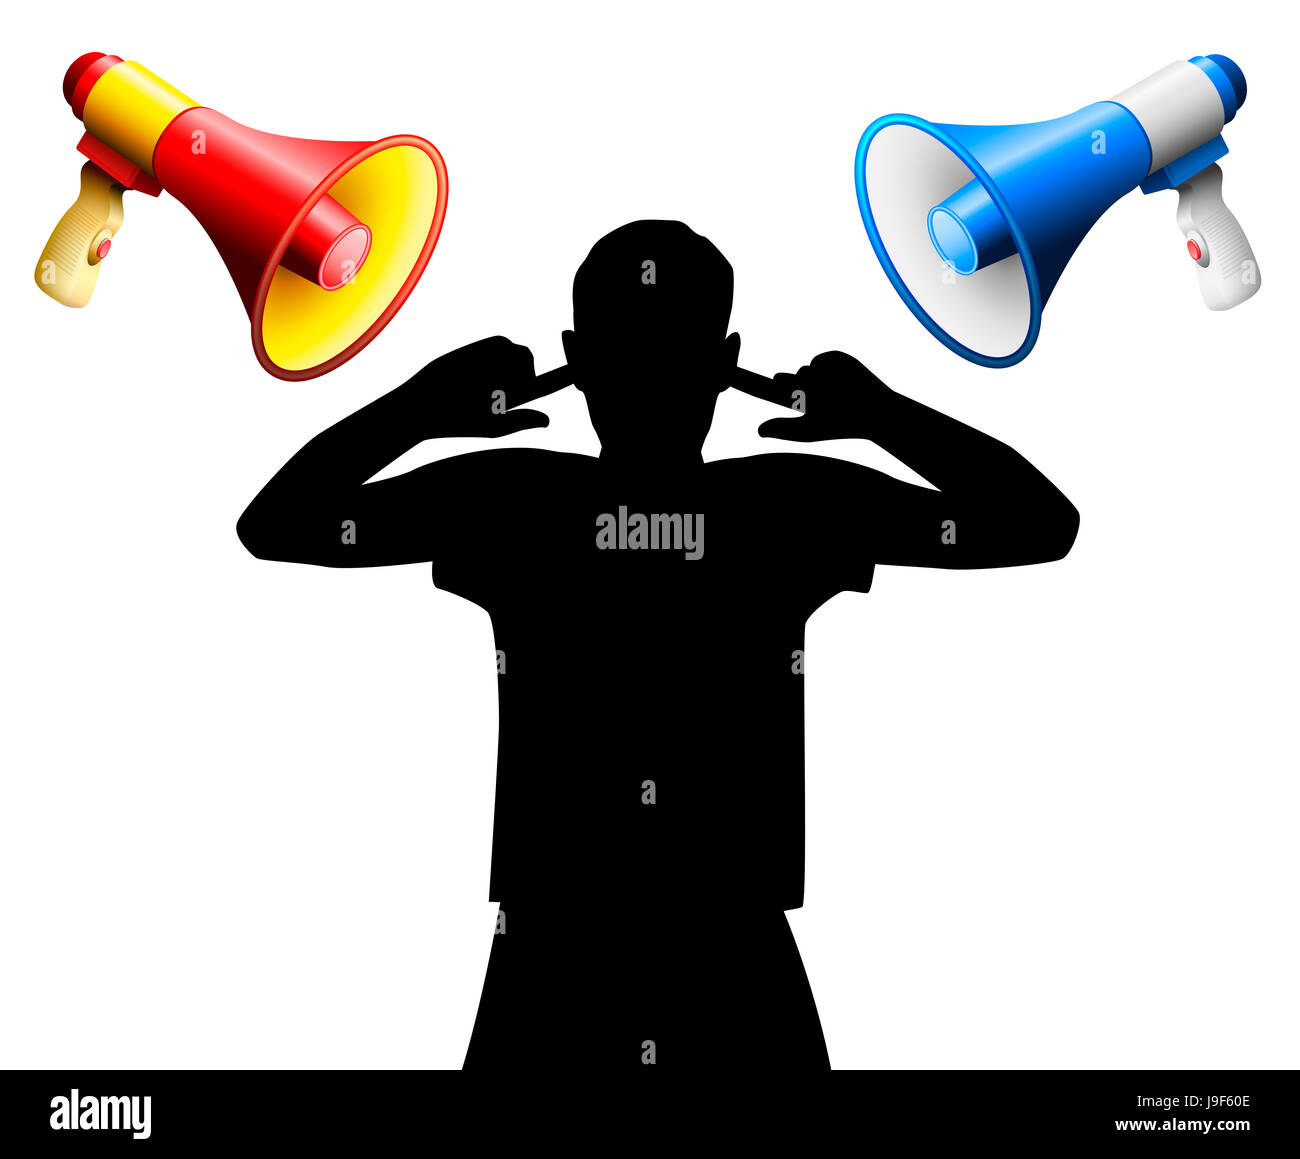 Noise disturbance by two loud megaphones yelling at an annoyed person who covers the ears, to avoid hearing damage, - Stock Image